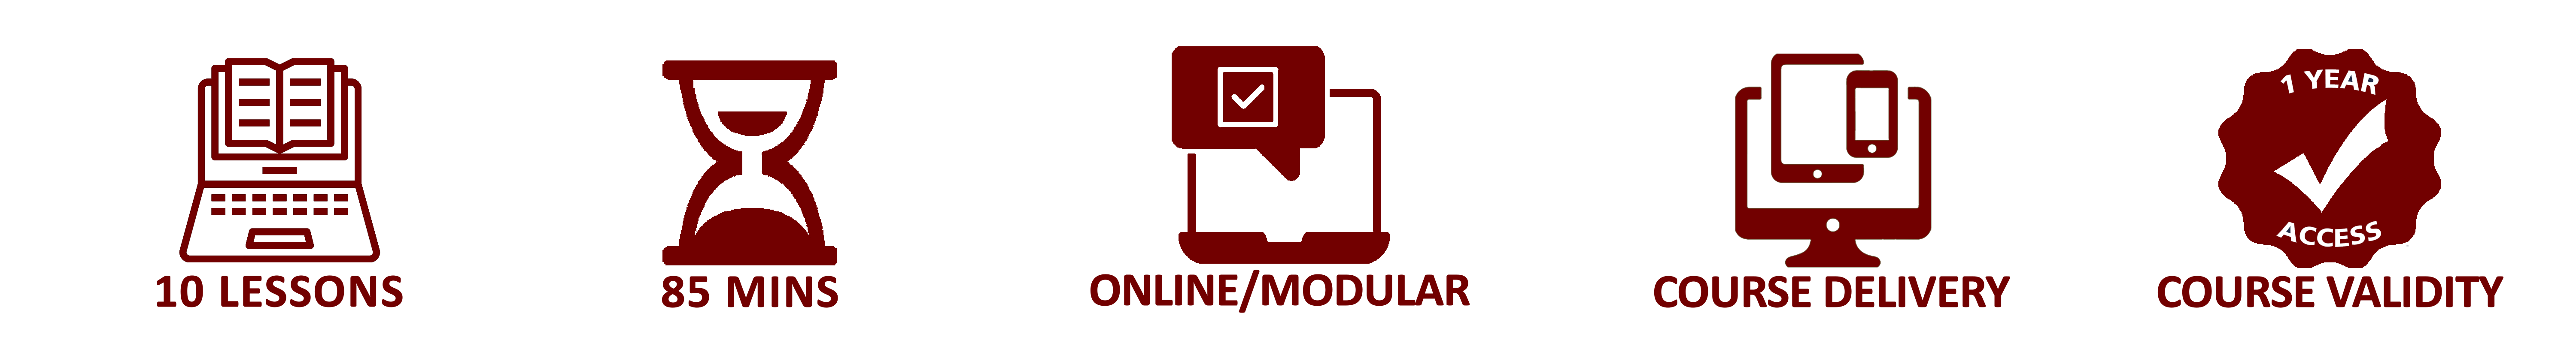 Sharing Calendars - Online Learning Courses - E-Learning Courses - Mandatory Compliance UK-